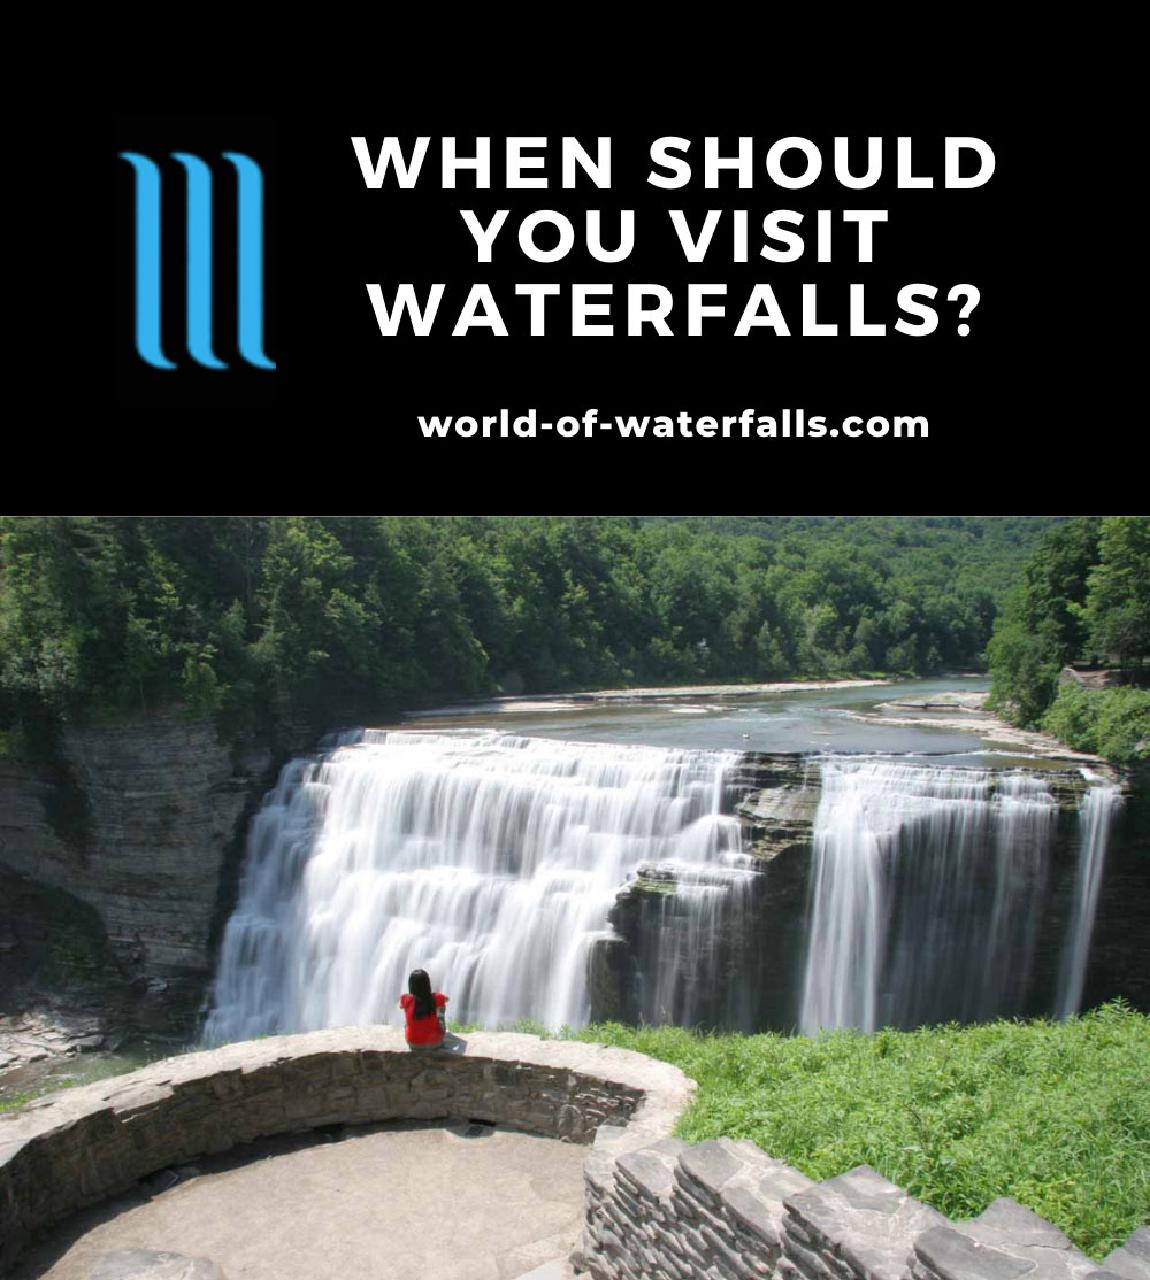 When Should You Visit Waterfalls?